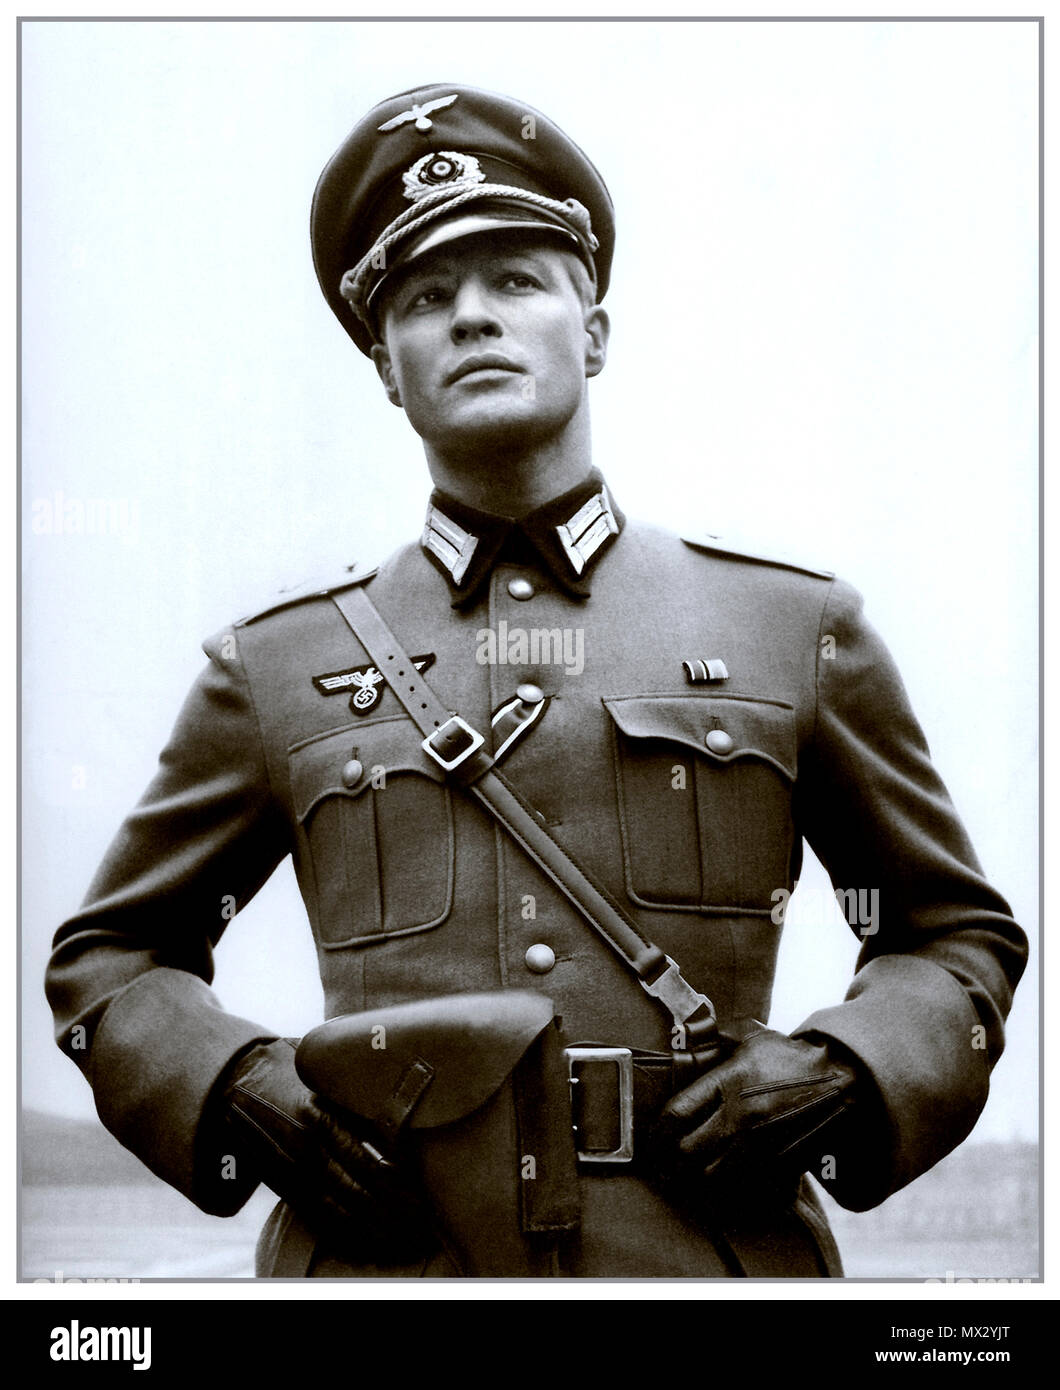 Vintage B&W film still image of Marlon Brando in Nazi military uniform starring in The Young Lions a 1958 Twentieth Century Fox movie film directed by Edward Dmytryk American-Canadian film director Stock Photo